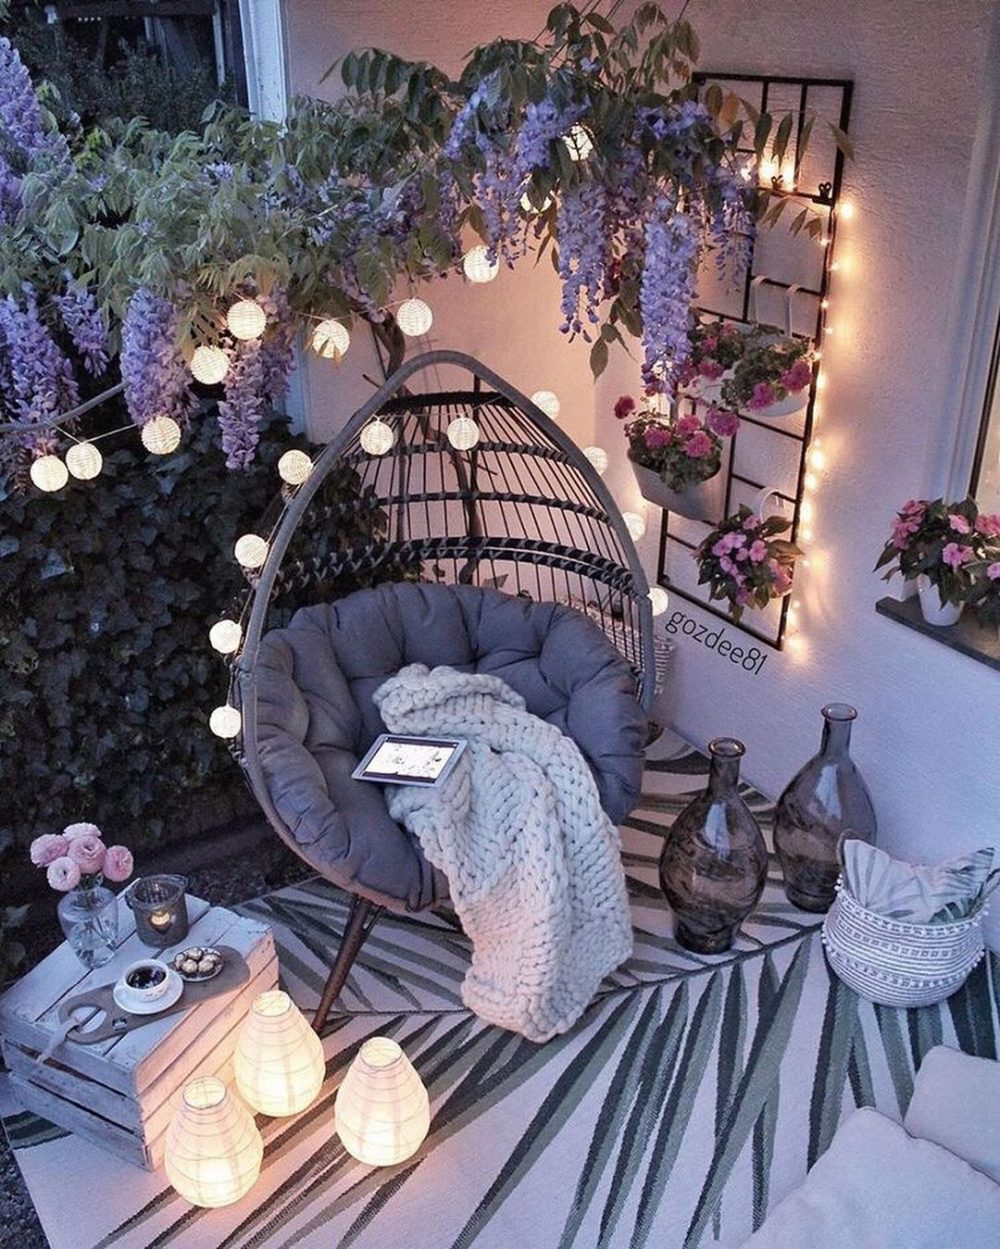 Outdoor Boho Reading Nook